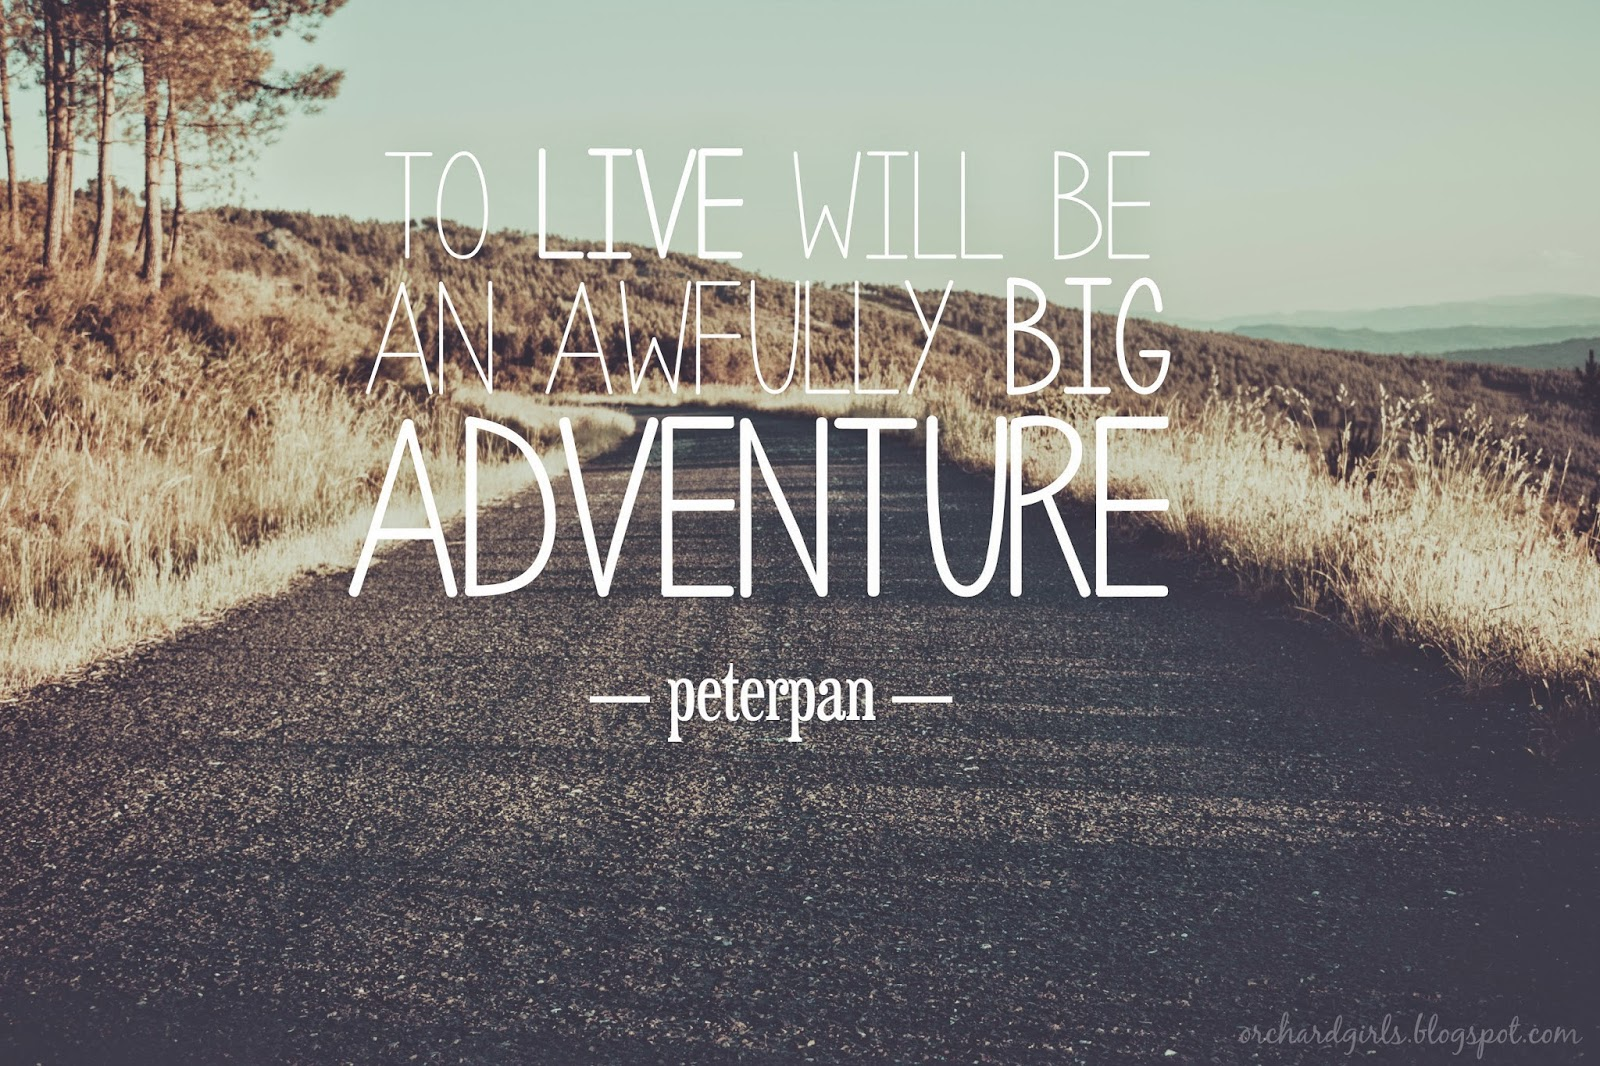 To live will be an awfully big adventure - Peterpan